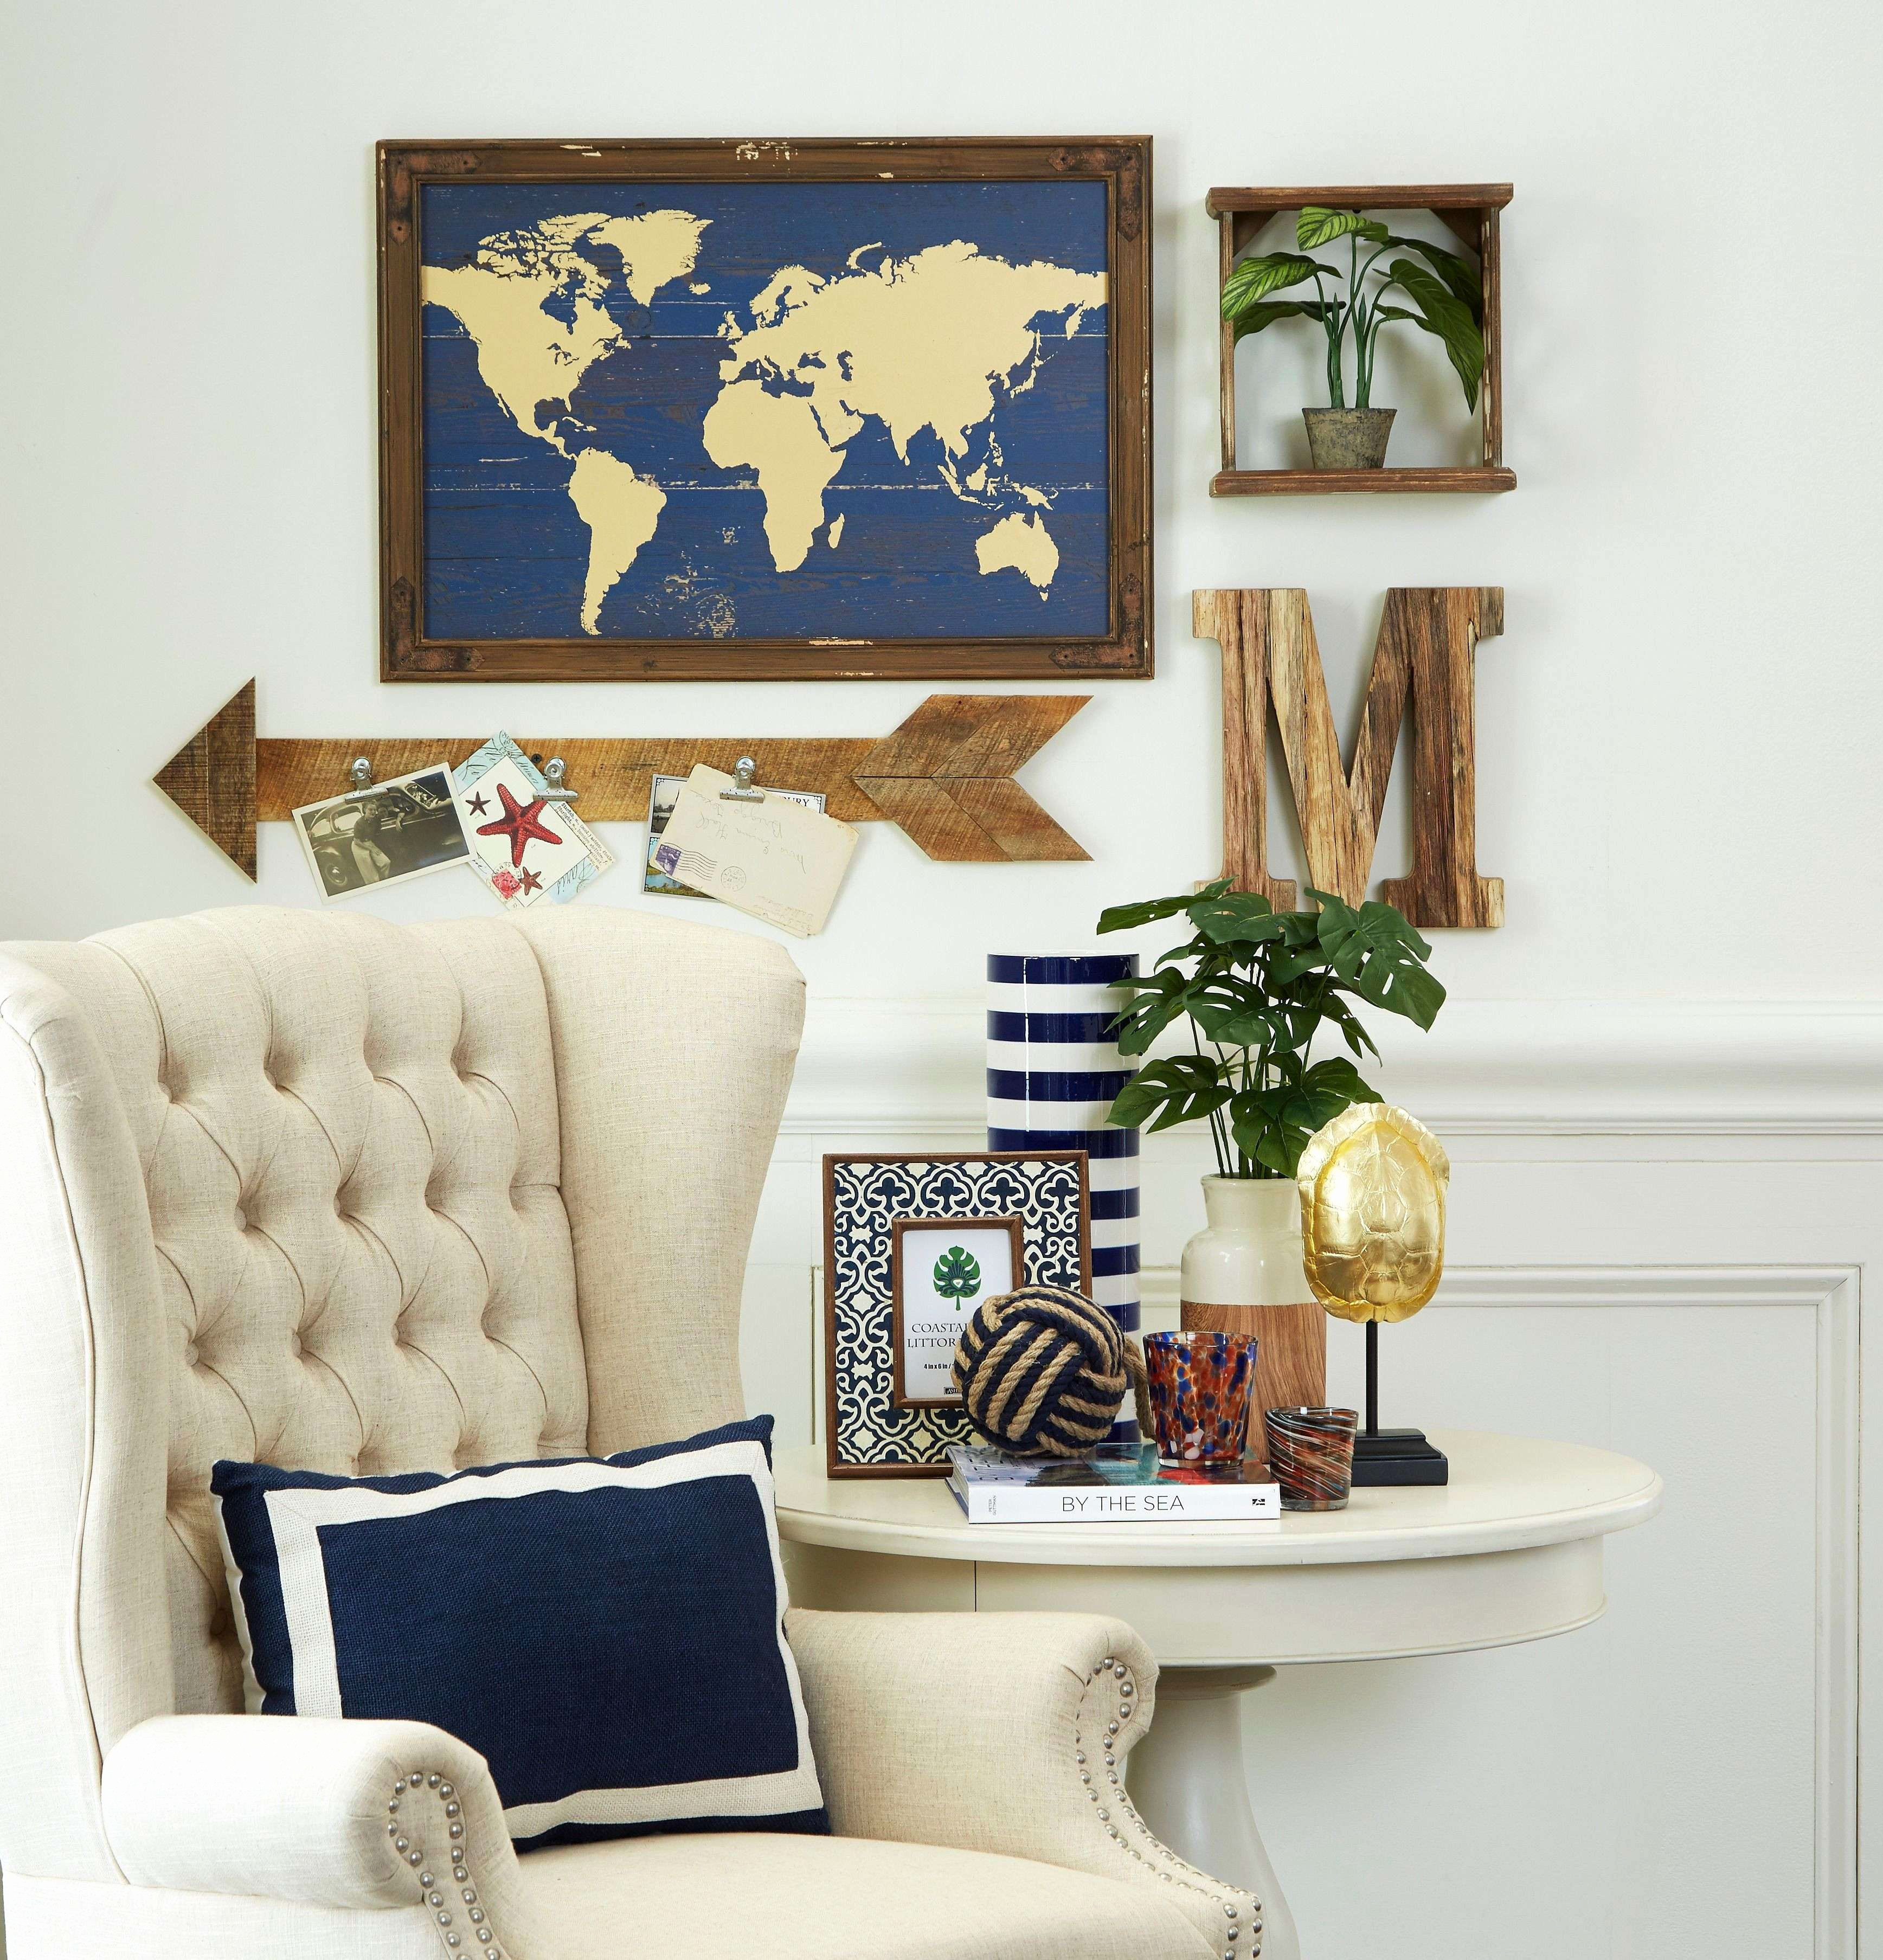 Paint Design Ideas For Walls Luxury Collection Wall - World Map - HD Wallpaper